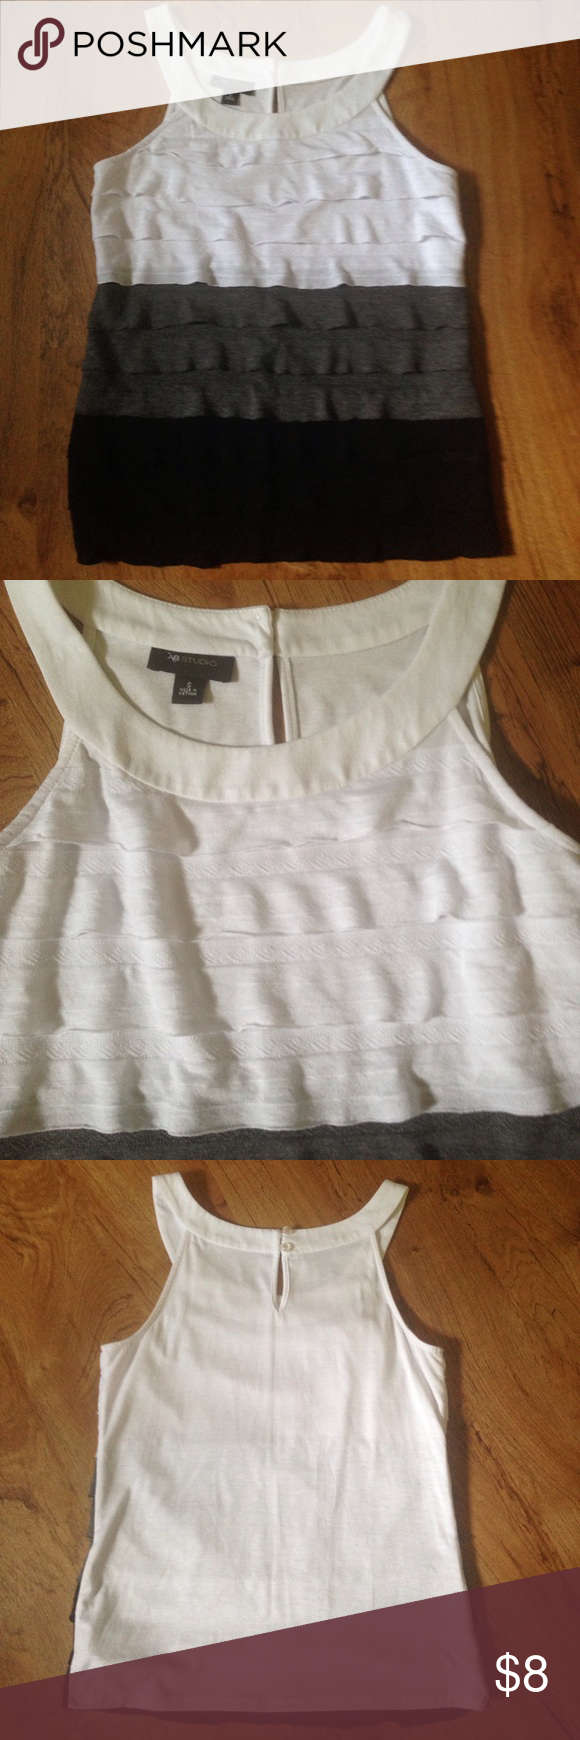 AB Studio Layered Tank You will love the fit of this classic layered tank! White, gray, and black! Gently worn, excellent condition! AB Studio Tops Tank Tops